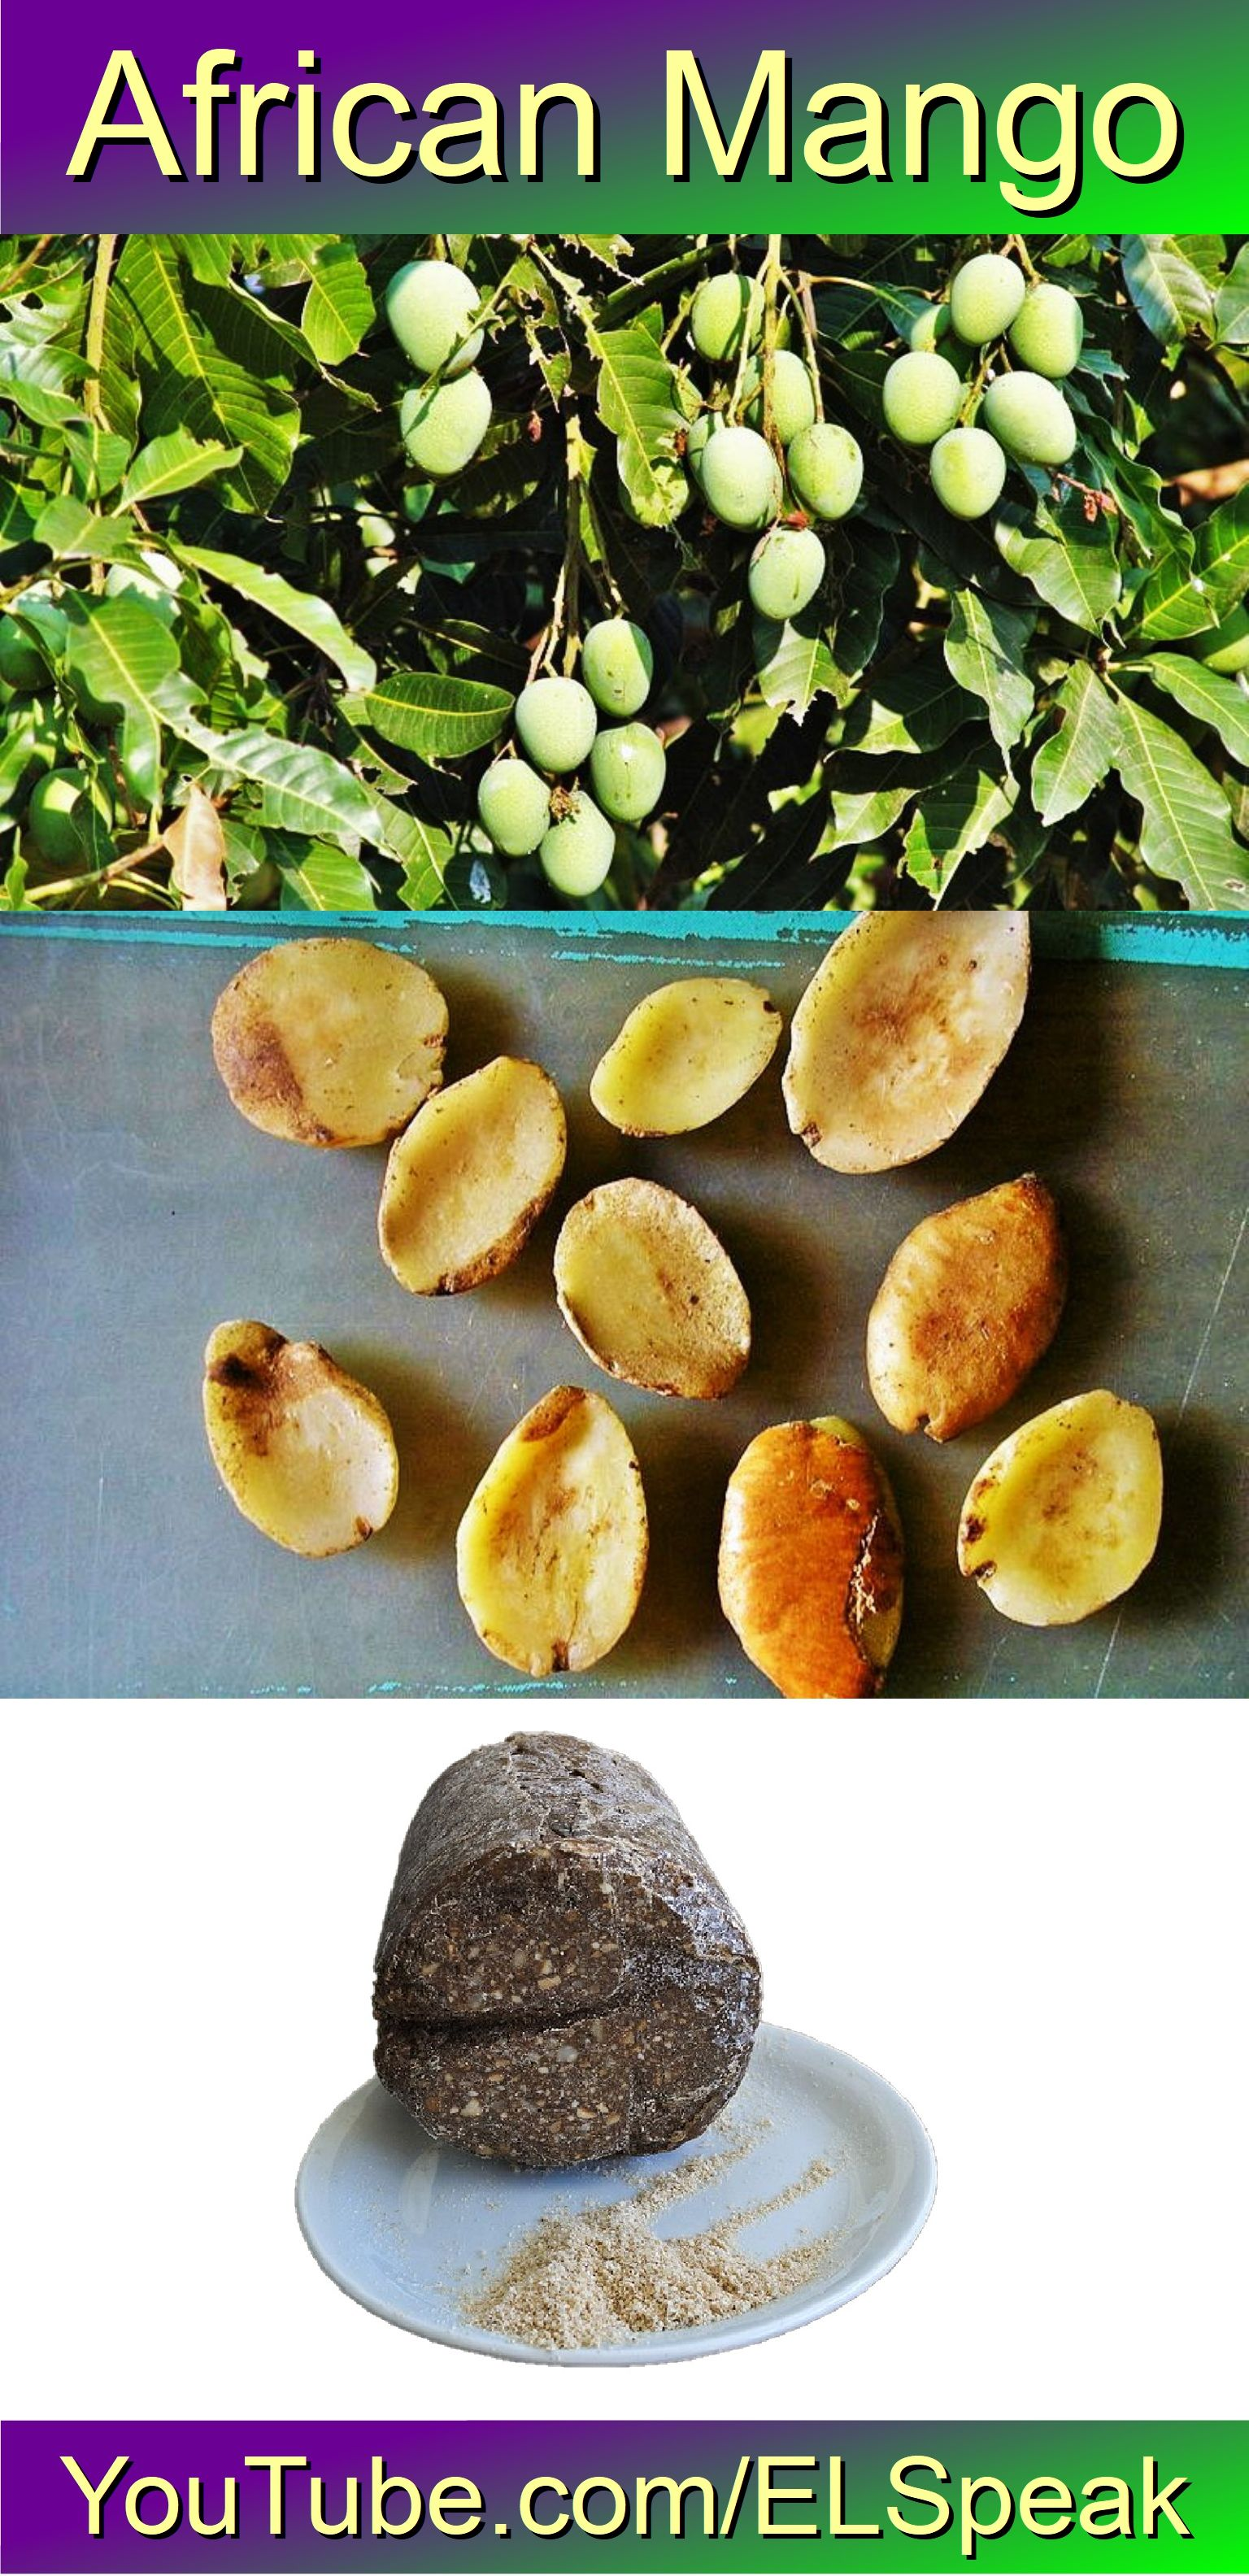 African Mangoes Irvingia Gabonensis And Irvingia Wombolu Are African Tree Species Of The Genus Irvingia Bearing Edible Fruits Similar To Mango That Are Par